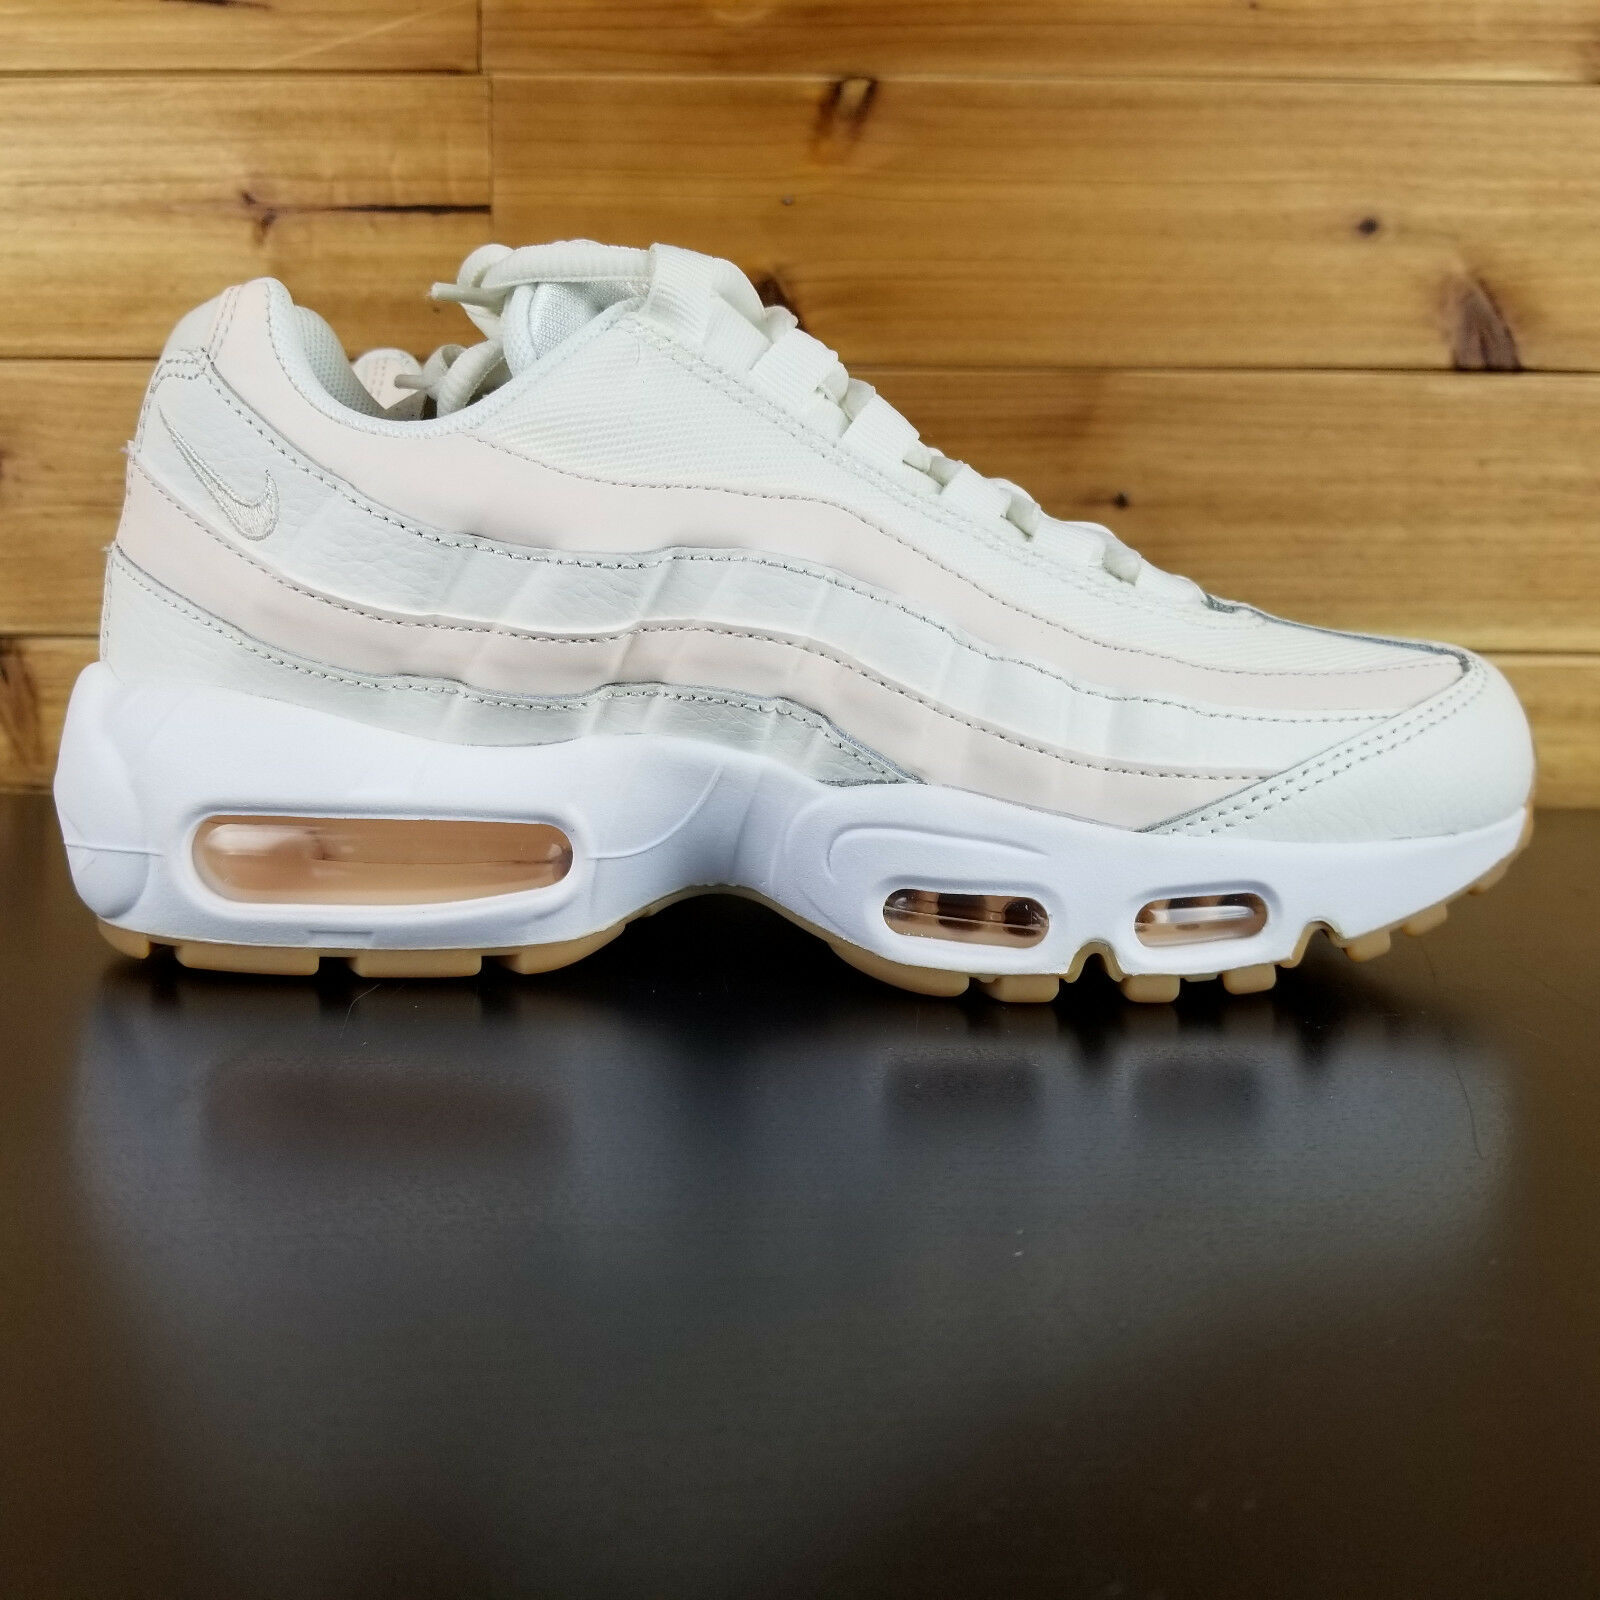 Nike Wmns Air Max 95 OG Women New Sail Guava Ice Lifestyle Sneakers 307960-111